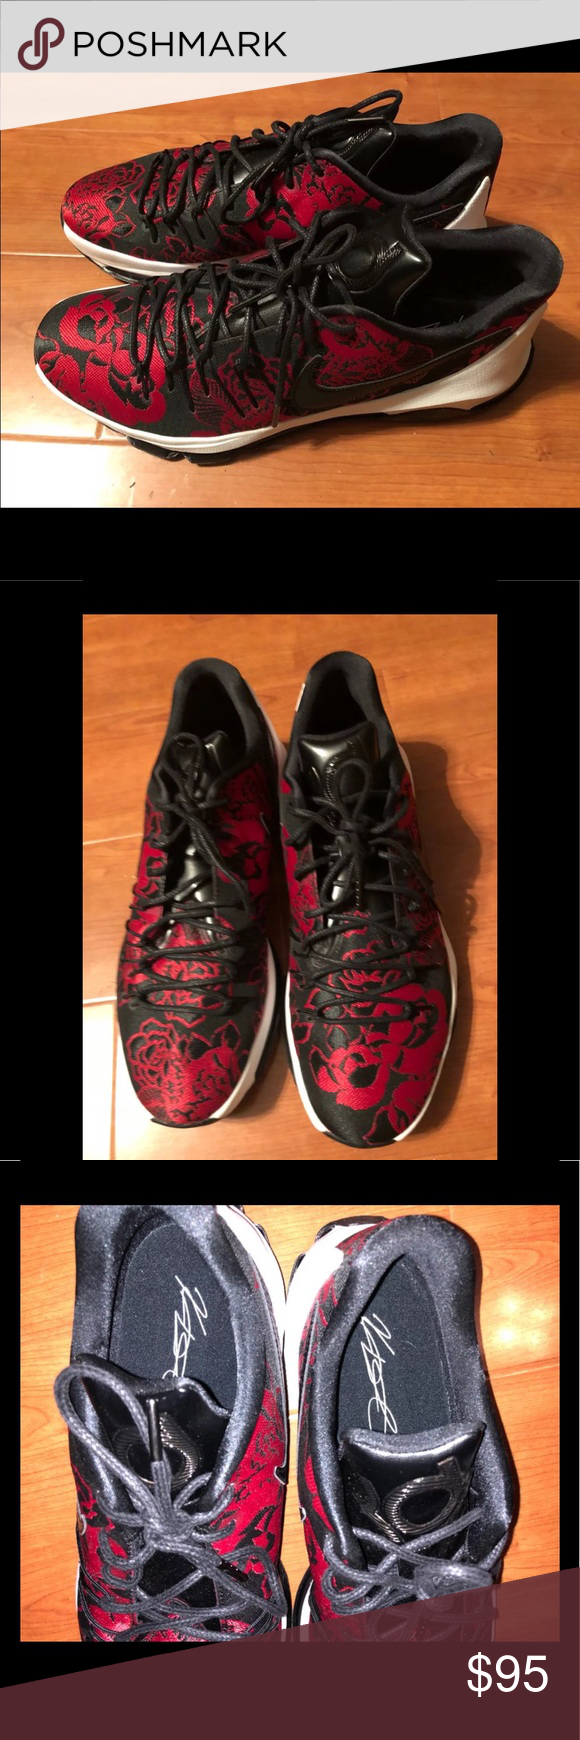 c1661487cb1e Nike KD 8 ext black and red rose sneakers Sz 13 806393-004 Brand new Nike  KD 8 EXT black and red rose Kevin Durant Nike tennis shoes Size 13 Nike  Shoes ...